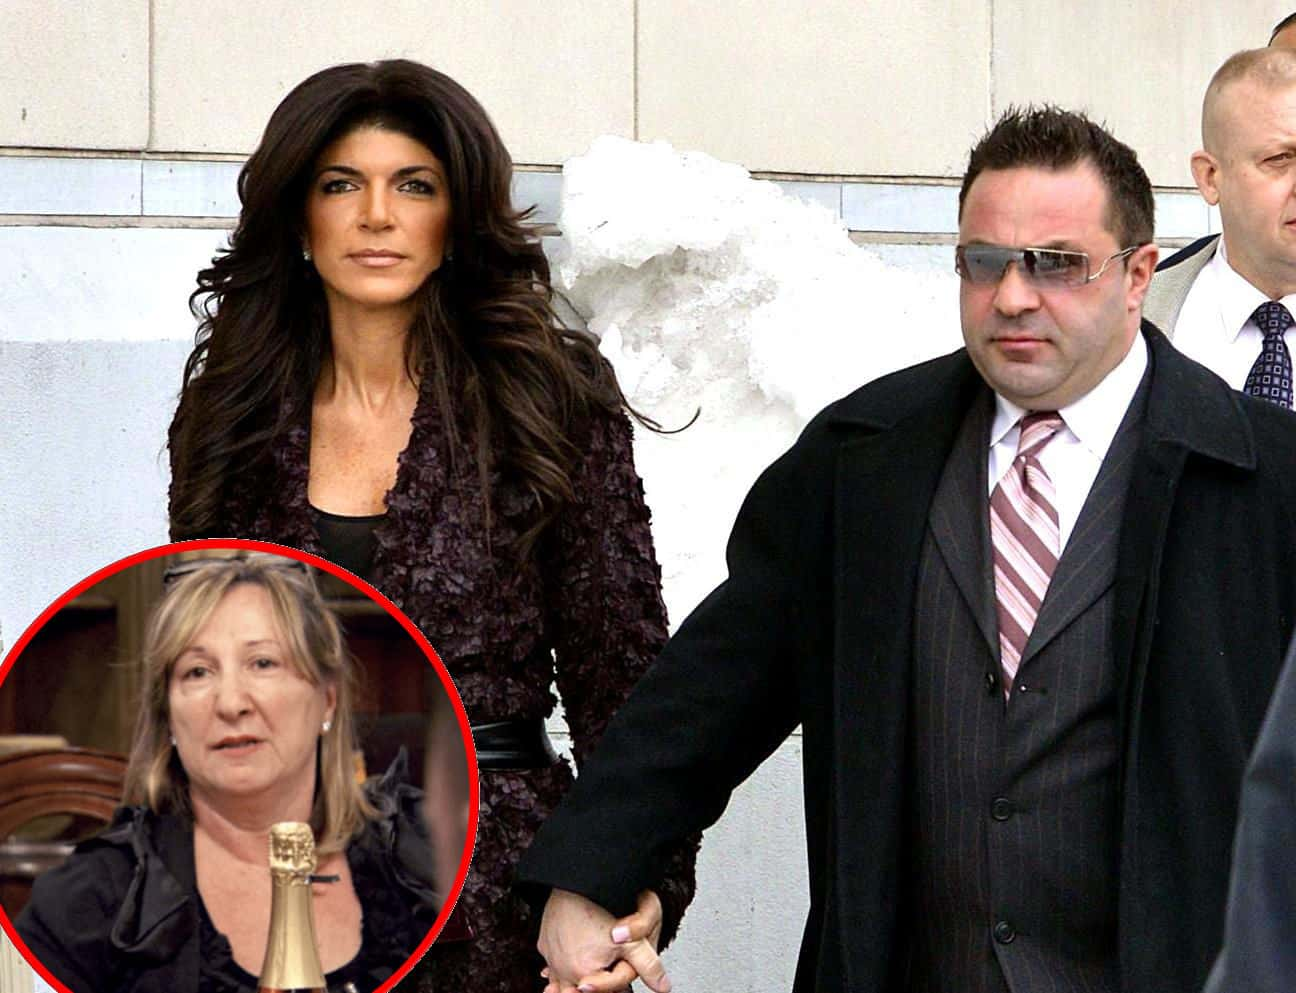 Joe Giudice's Mother Suffering as His Deportation Looms, RHONJ Cameras Capture Teresa's Response to Deportation News